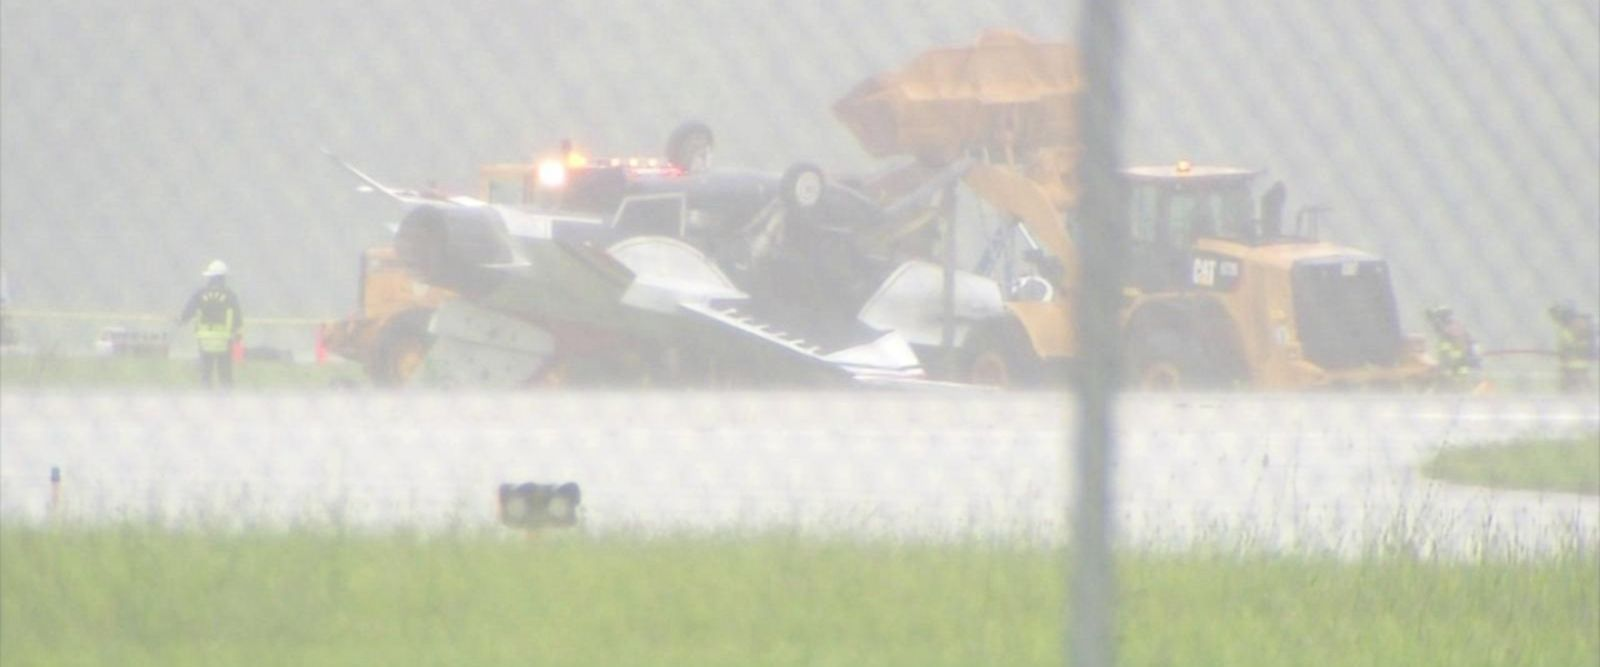 No one was killed in the accident, which involved an F-16 Thunderbird.